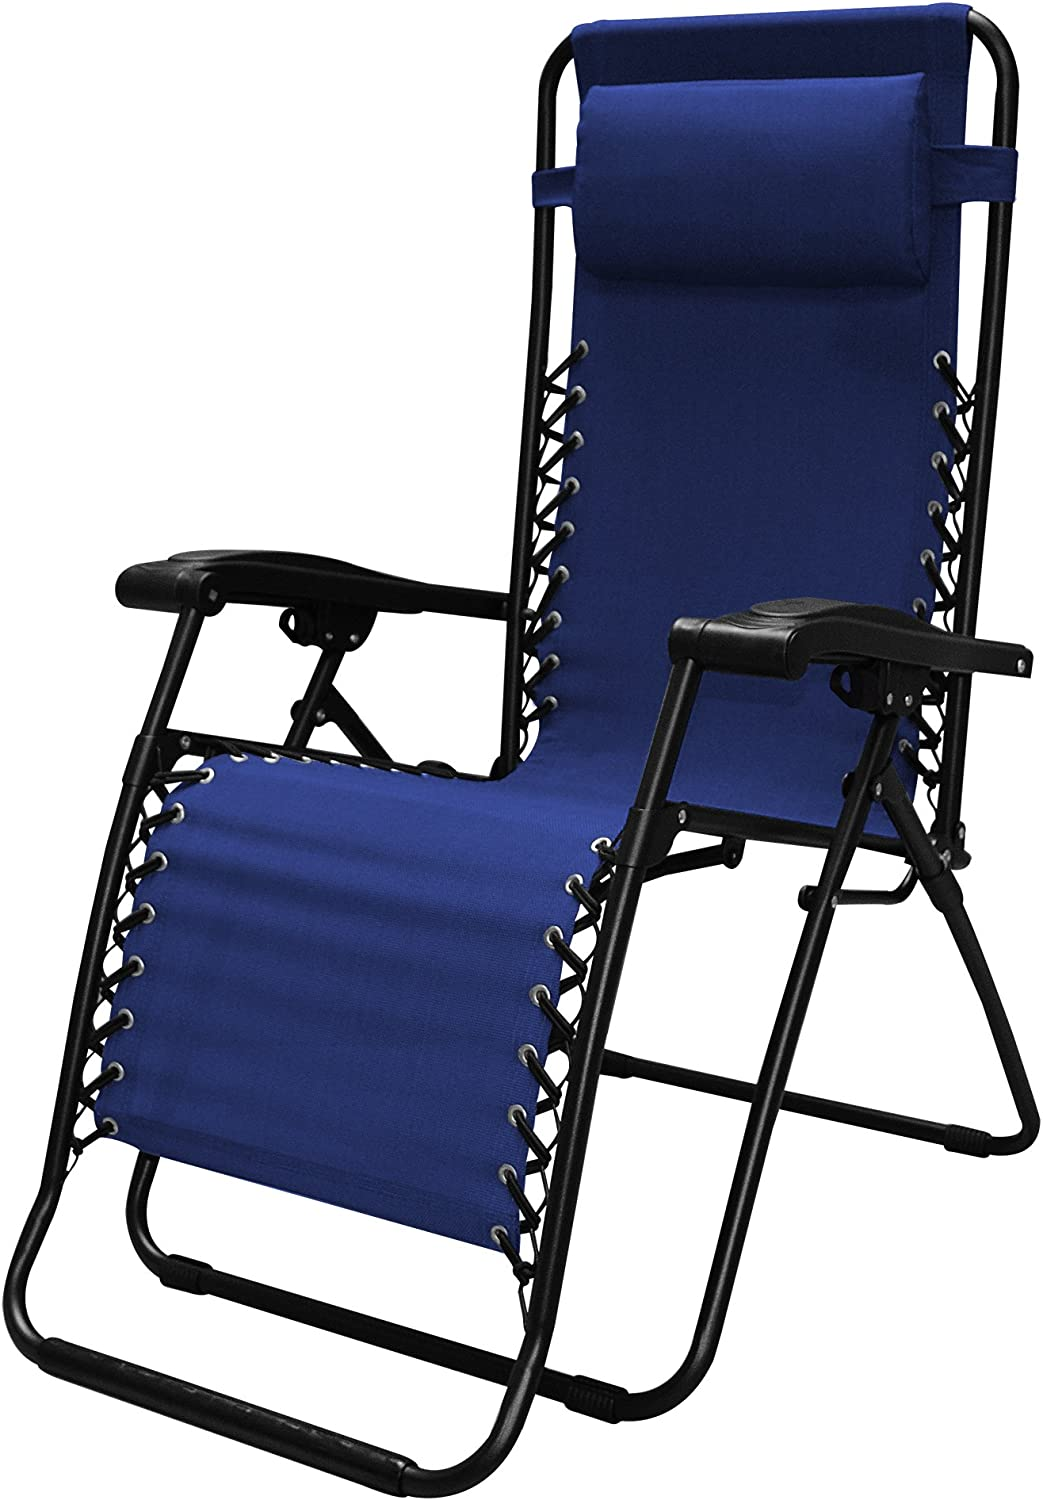 Caravan Sports Infinity Zero Gravity Chair, Blue, 1-Pack